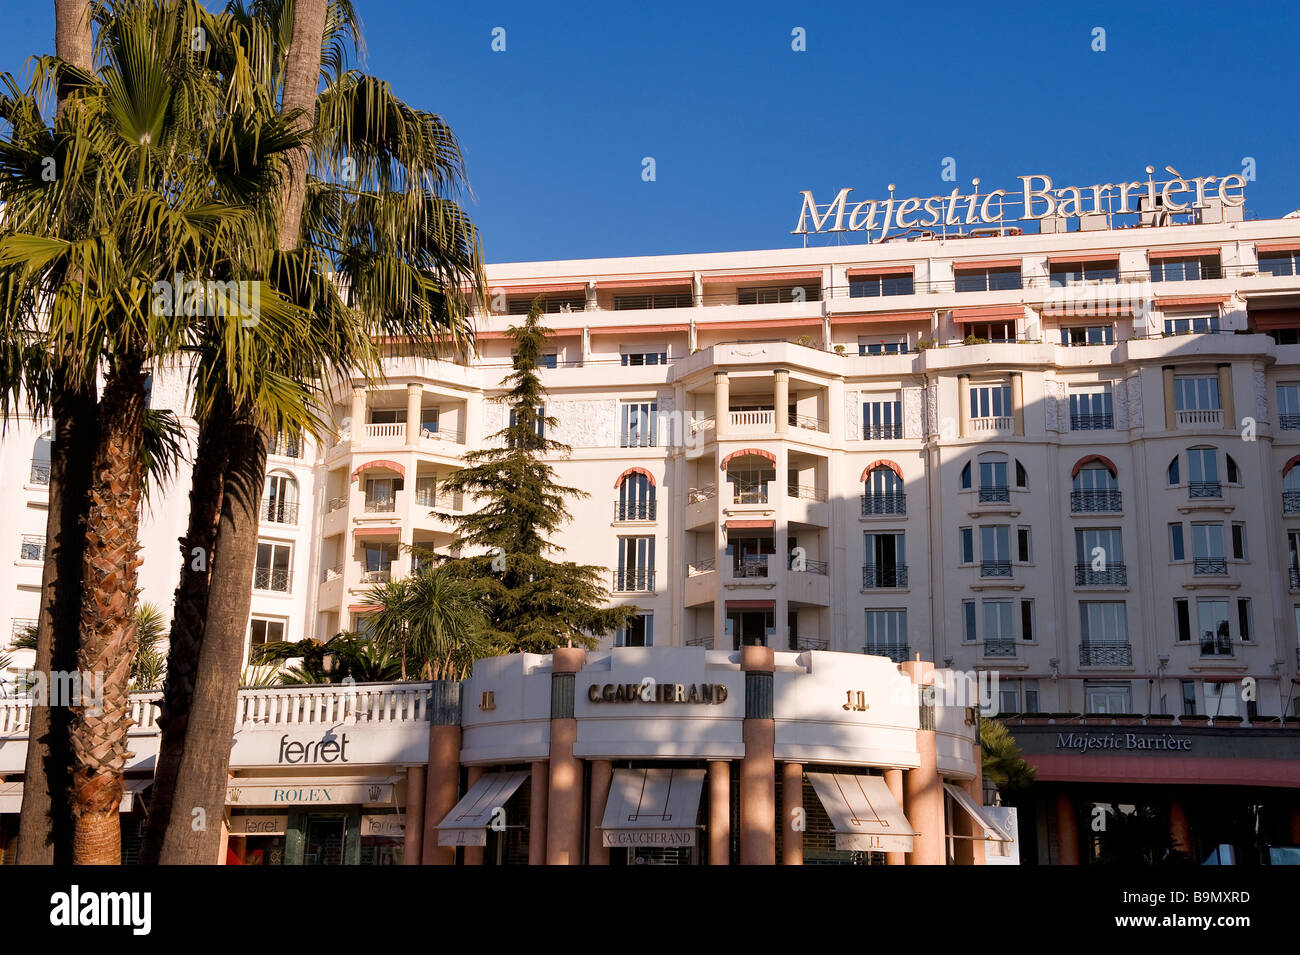 France alpes maritimes cannes 4 star hotel majestic barriere